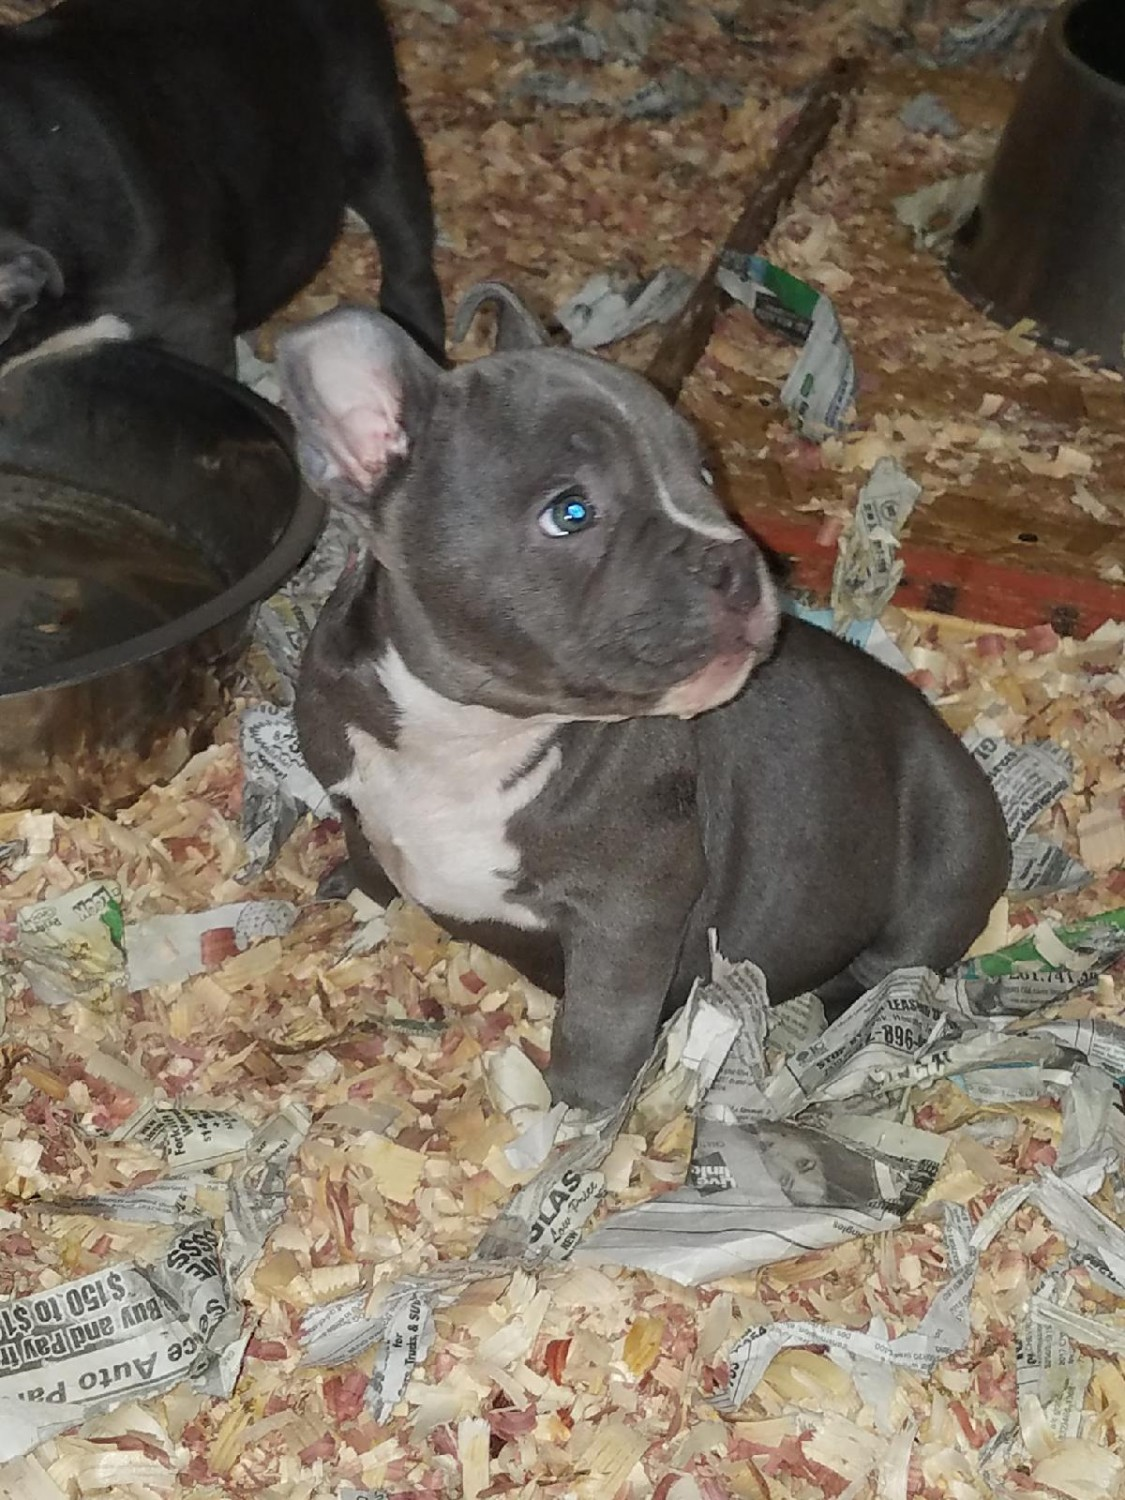 American Bully Puppies For Sale | Houston, TX #268396